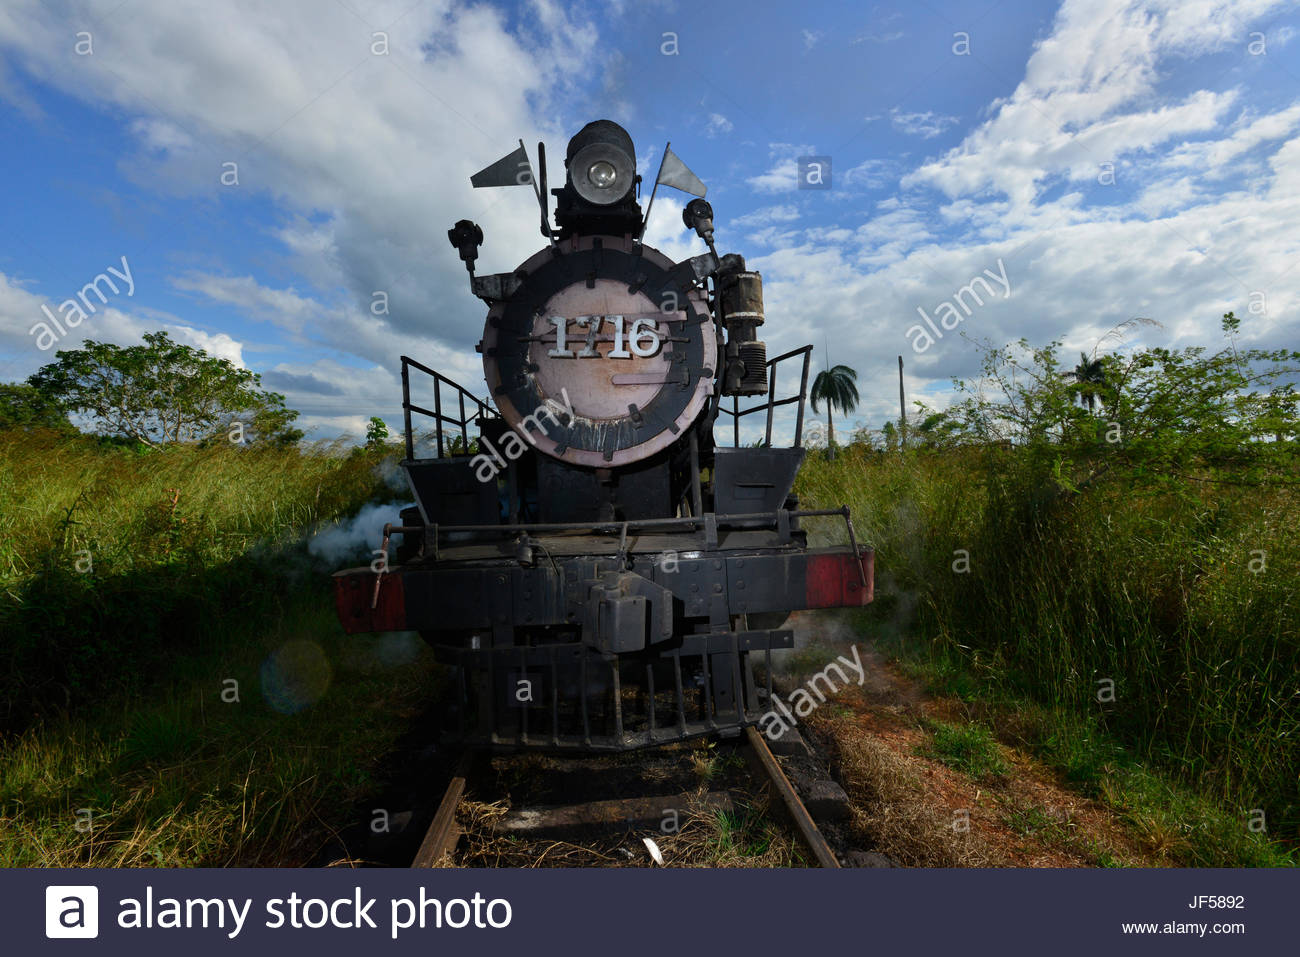 A 1913 steam locomotive that was used in the transport of sugarcane. - Stock Image